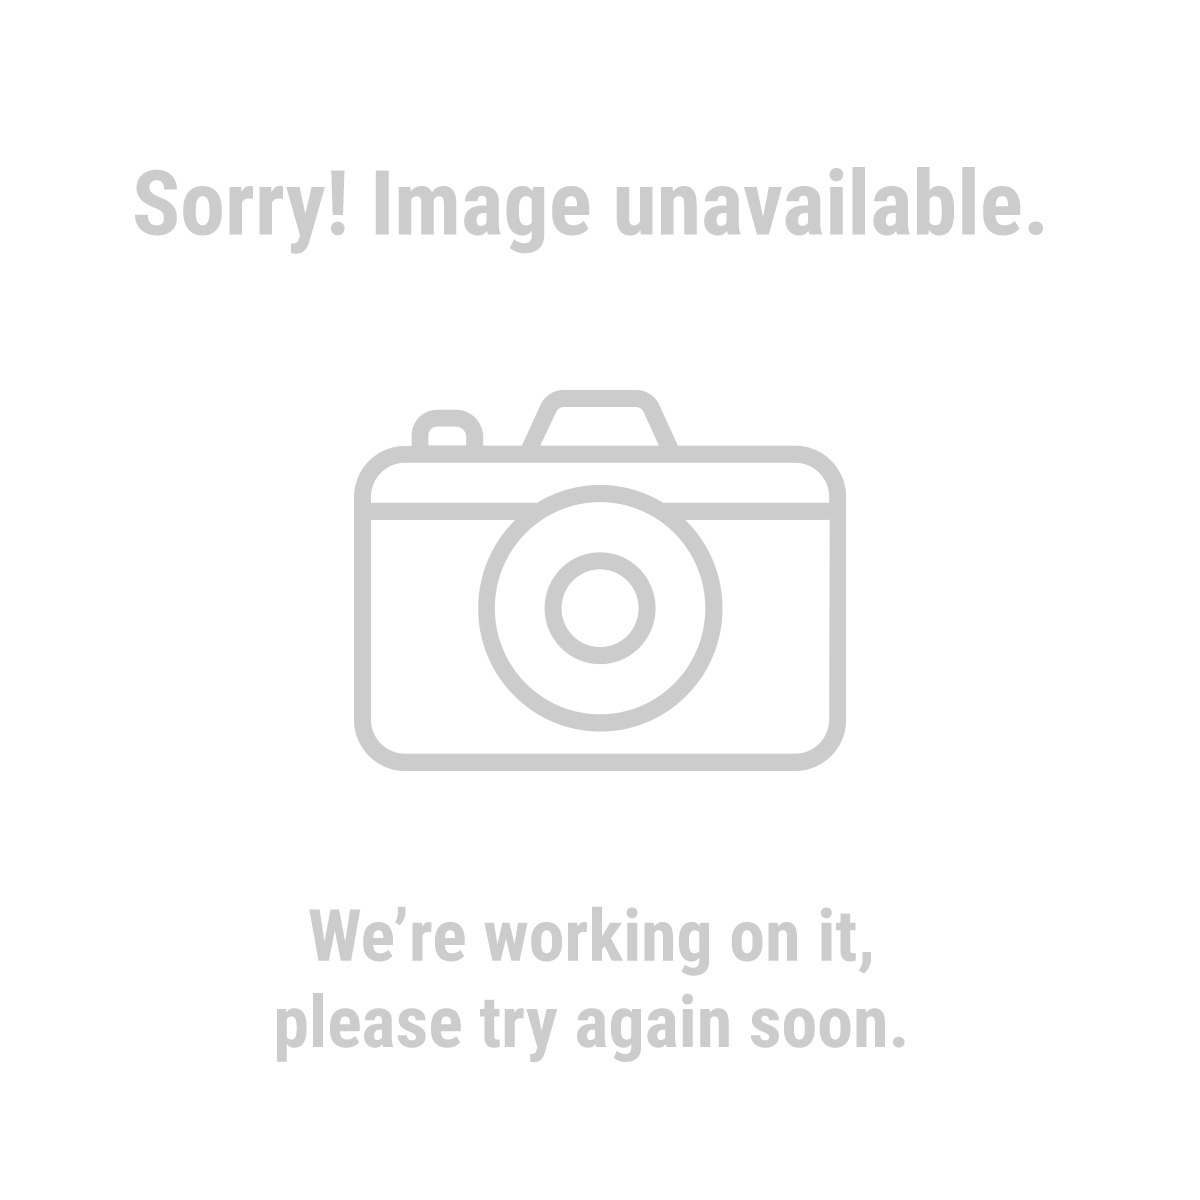 Haul-Master® 95991 8-in-1 Adjustable Ball Mount Hitch